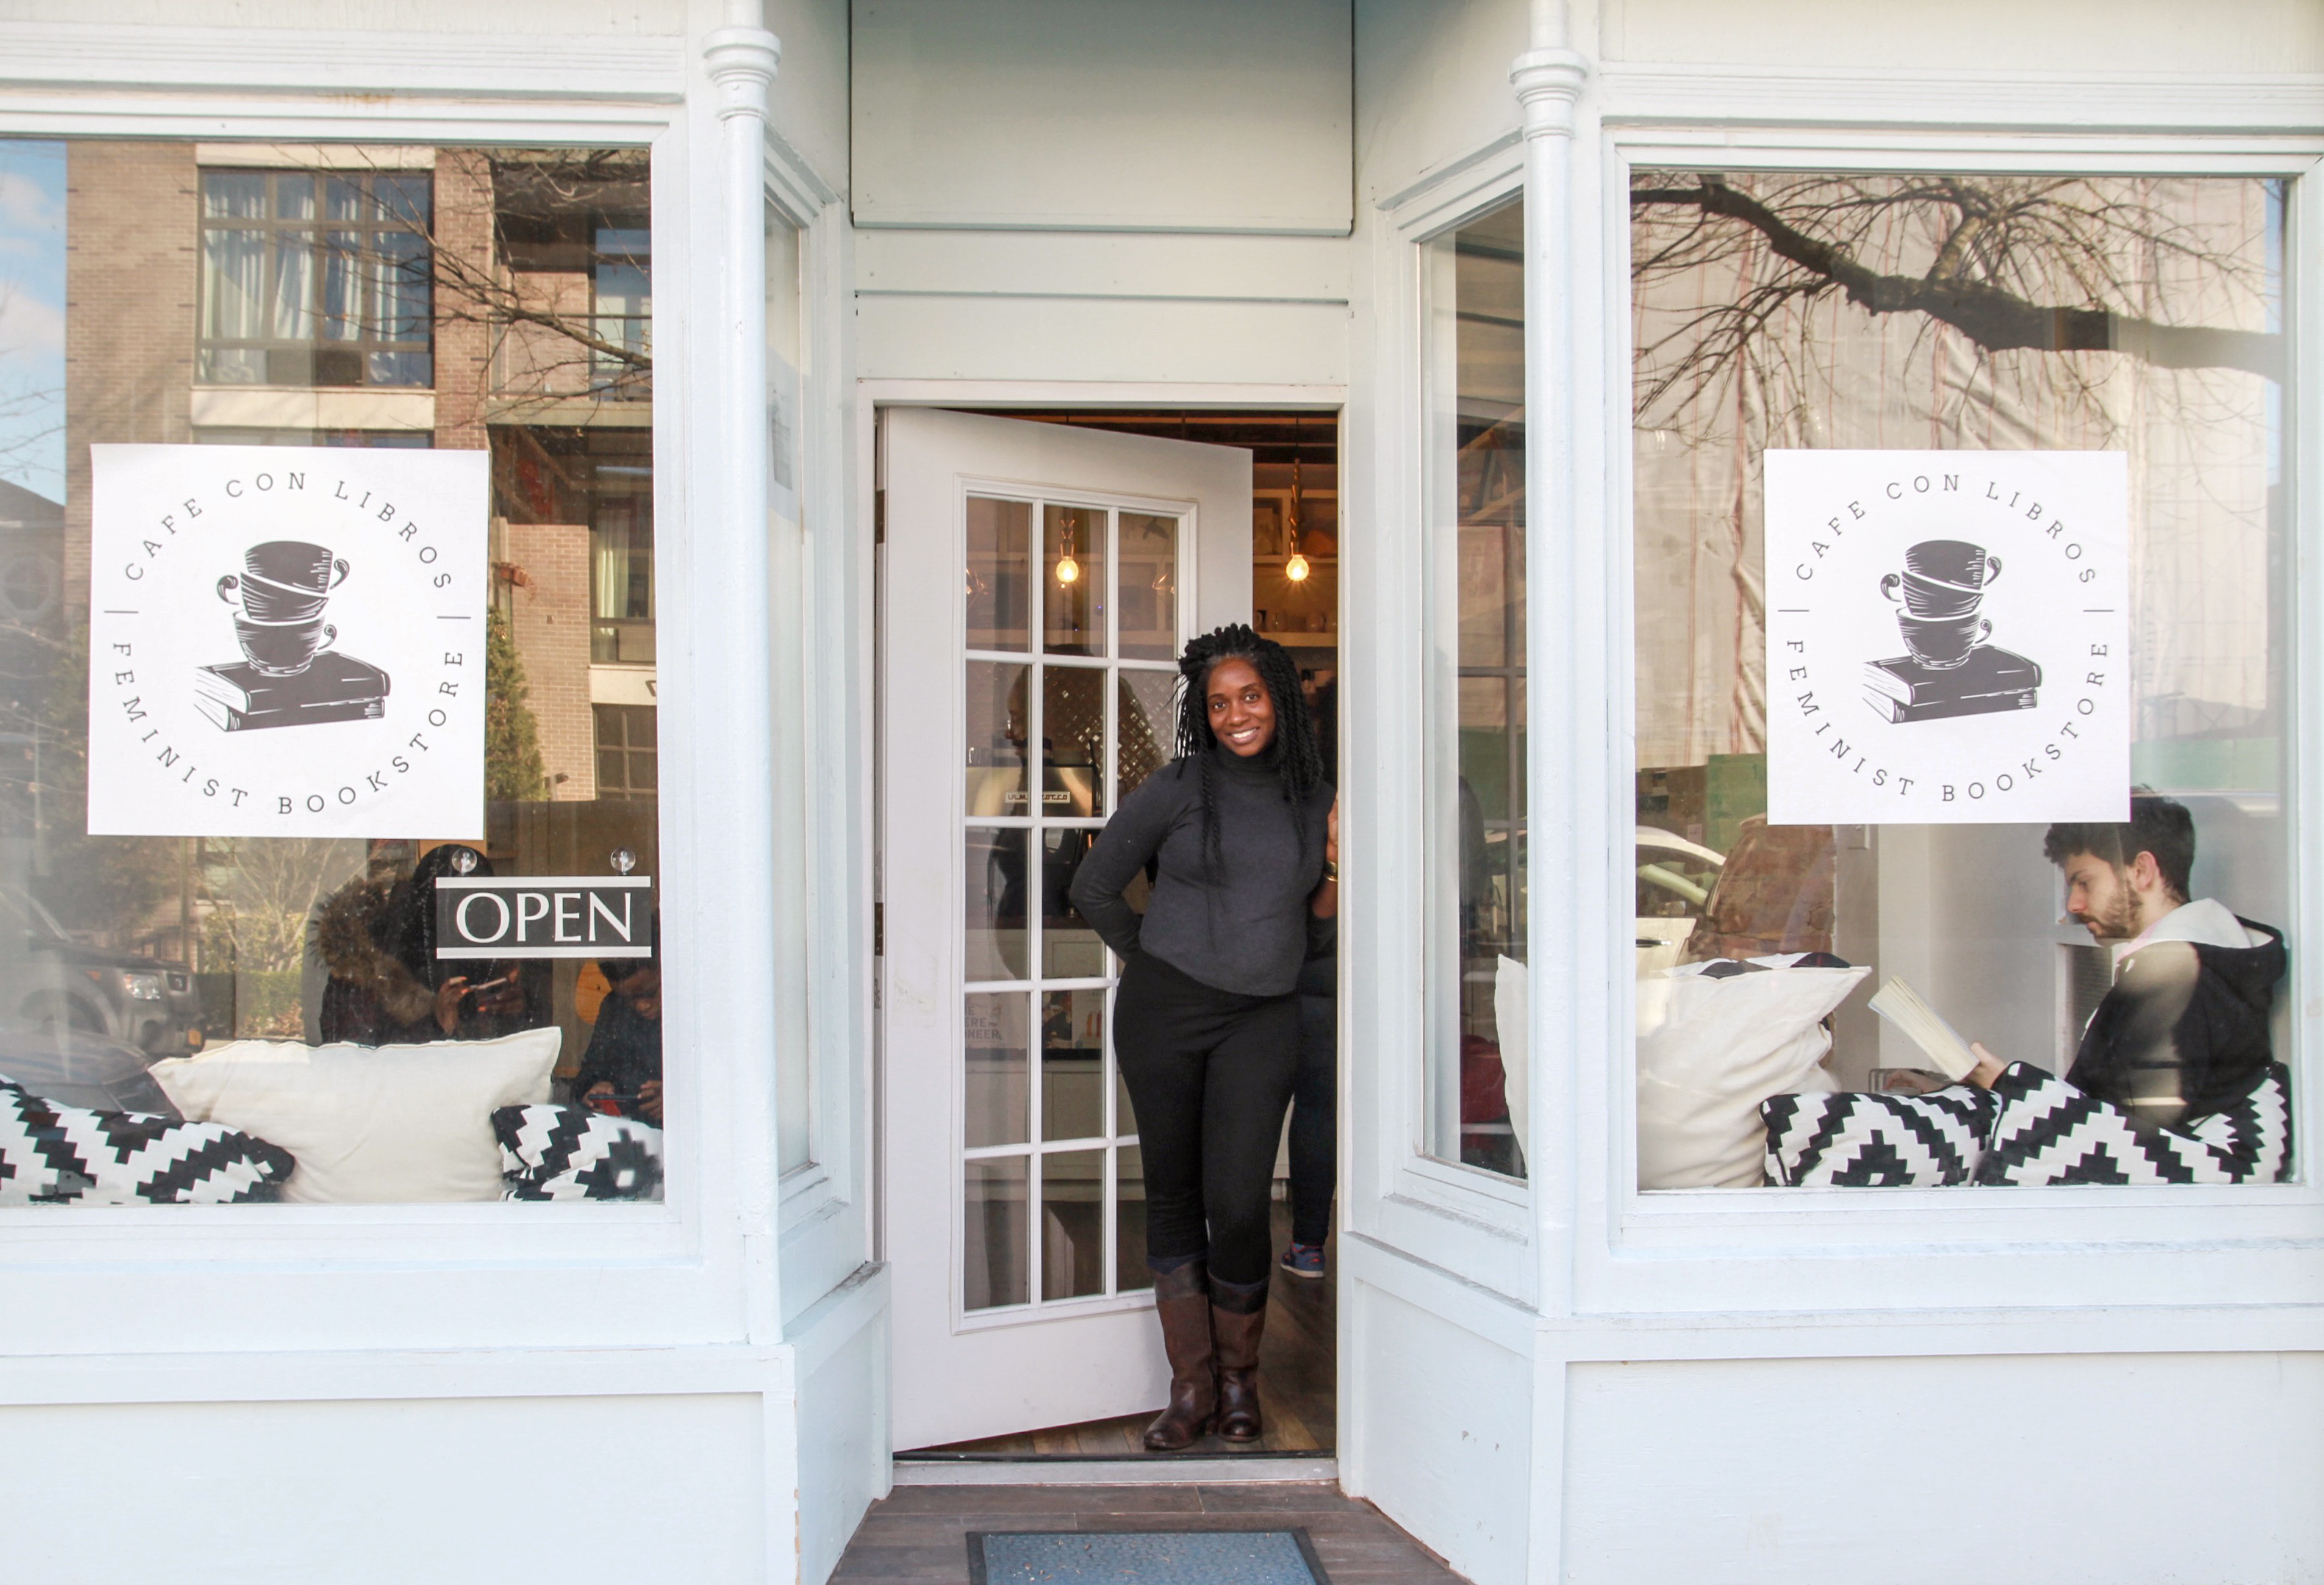 This Afro-Latina's Feminist Bookstore Is Building Community in Gentrifying Crown Heights